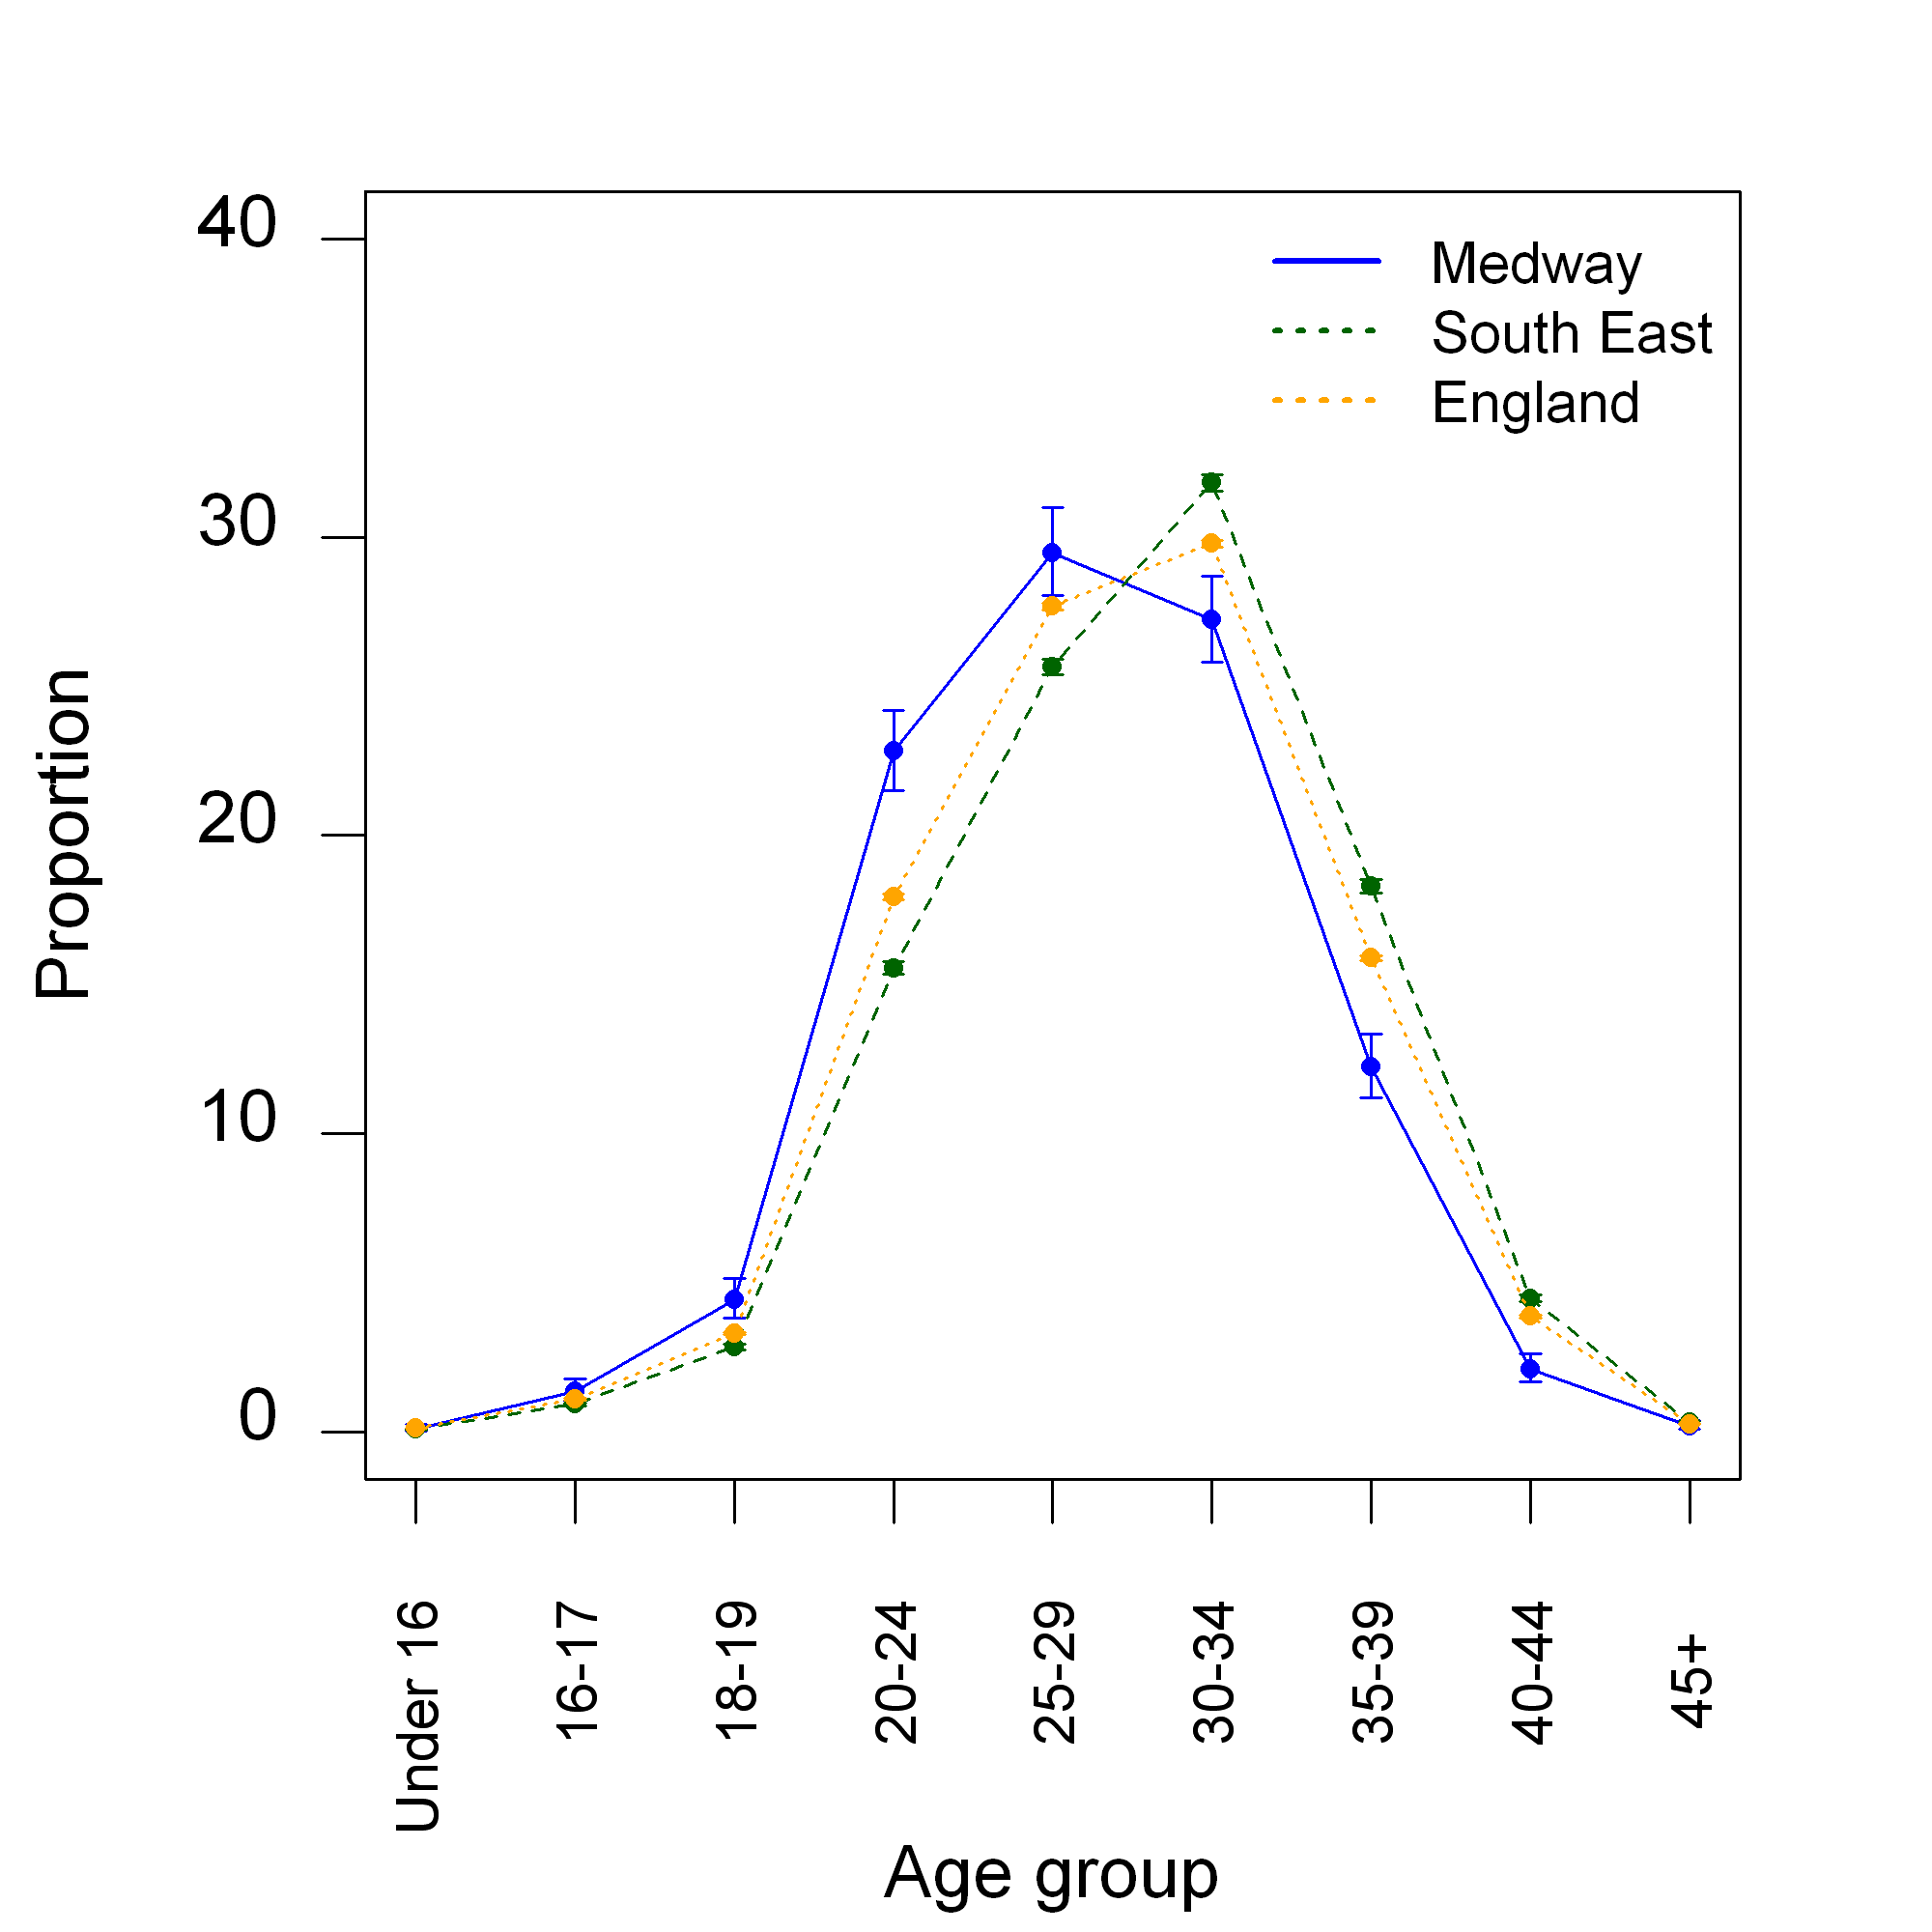 Figure 3: The percentage of 2012 live births per age band.